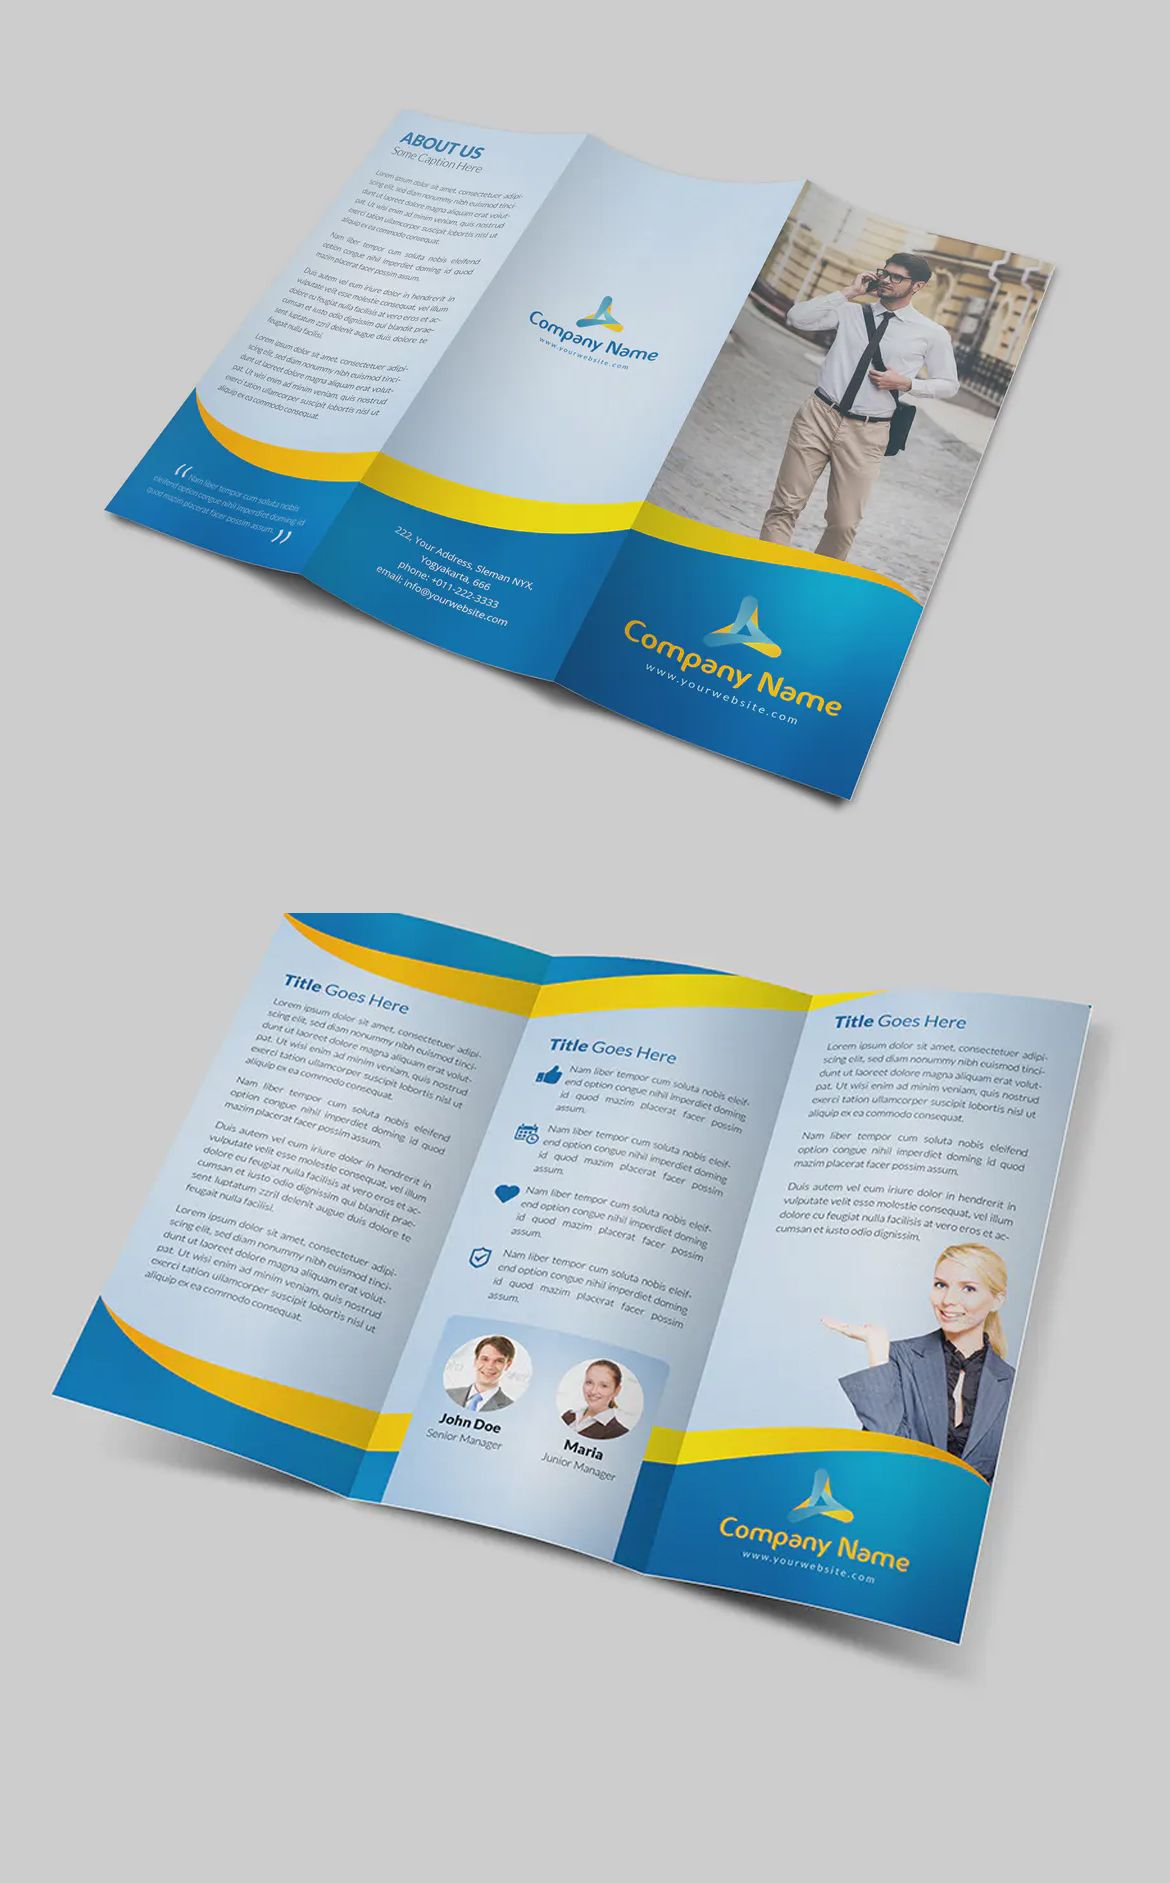 Elegant Trifold Brochure by fathurfateh on Brochure